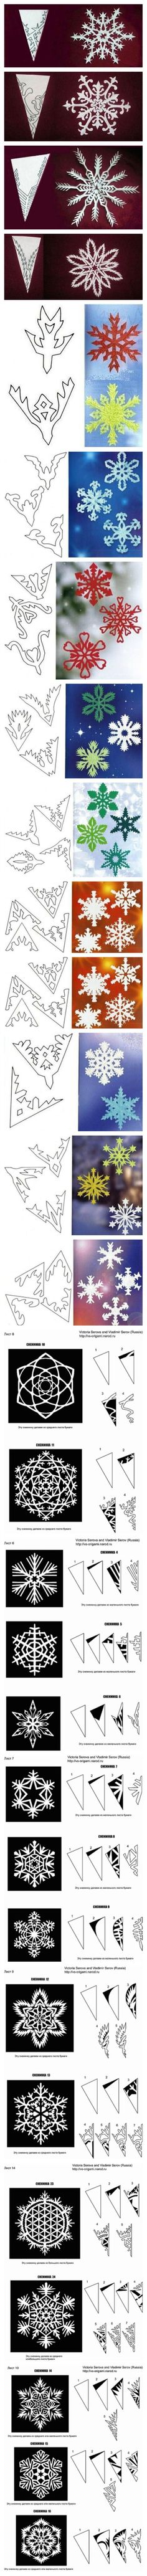 A  snowflake paper cutting tutorial. These are amazing! Great to do with bored children on winter break!